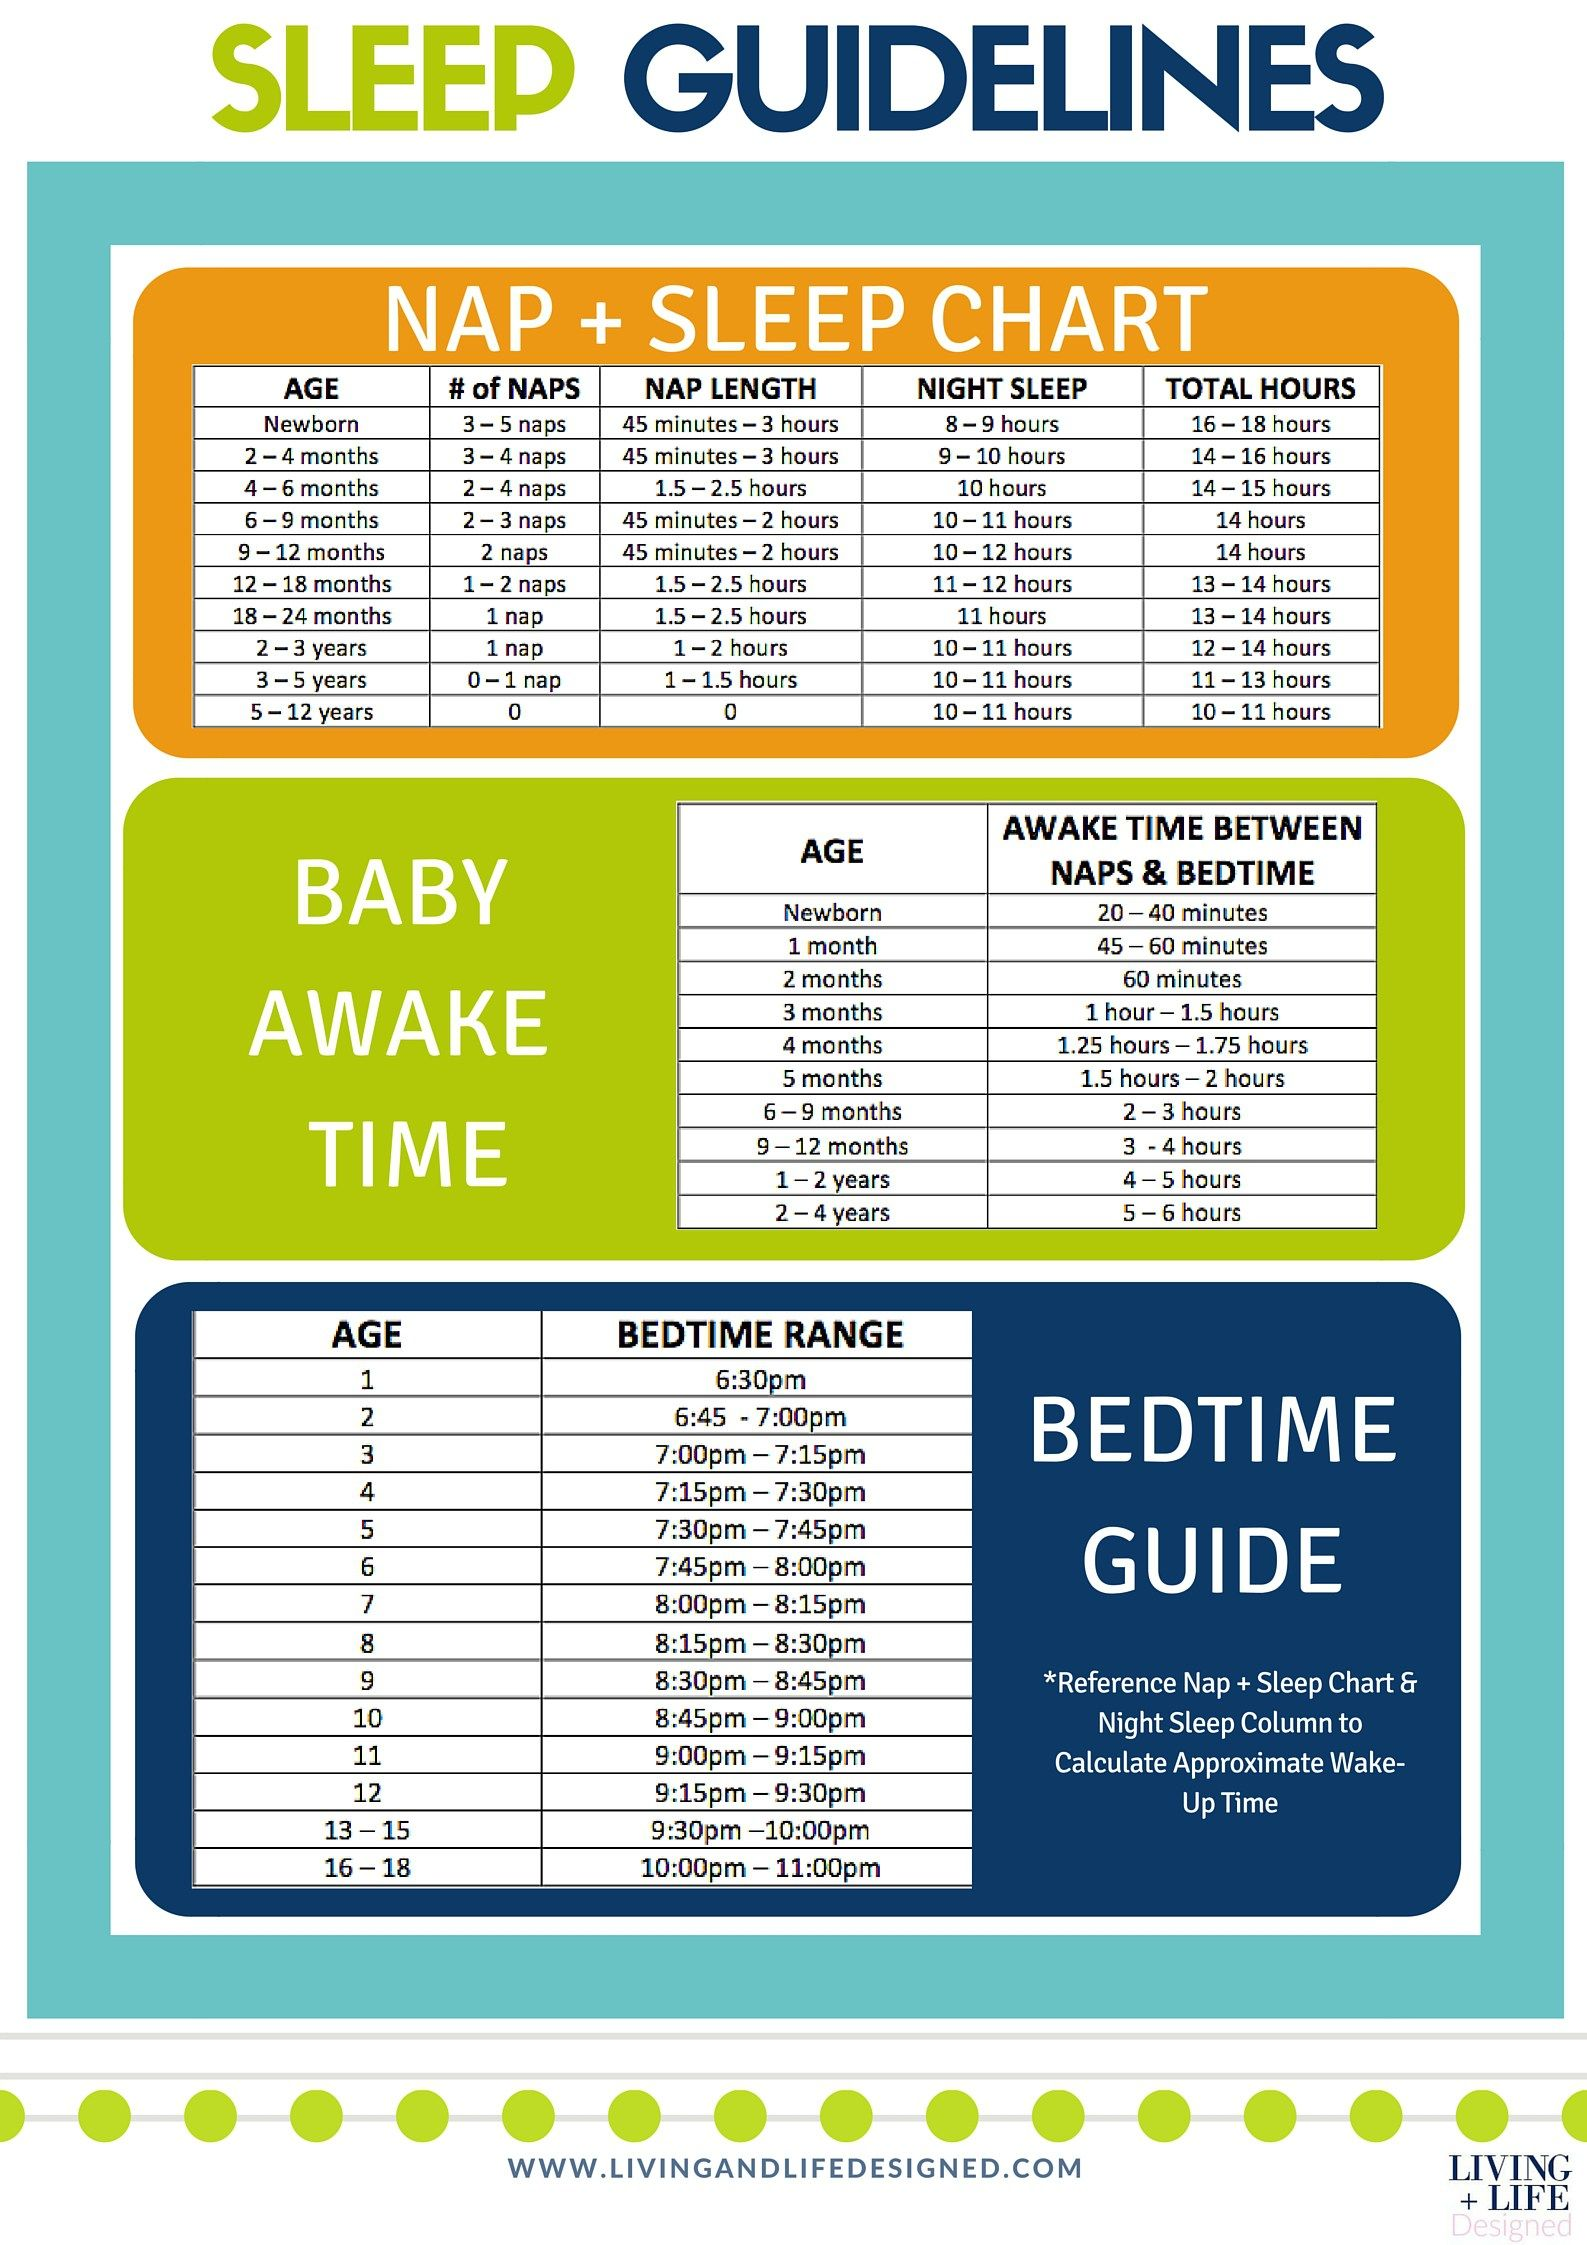 Comprehensive sleep guidelines for infants through